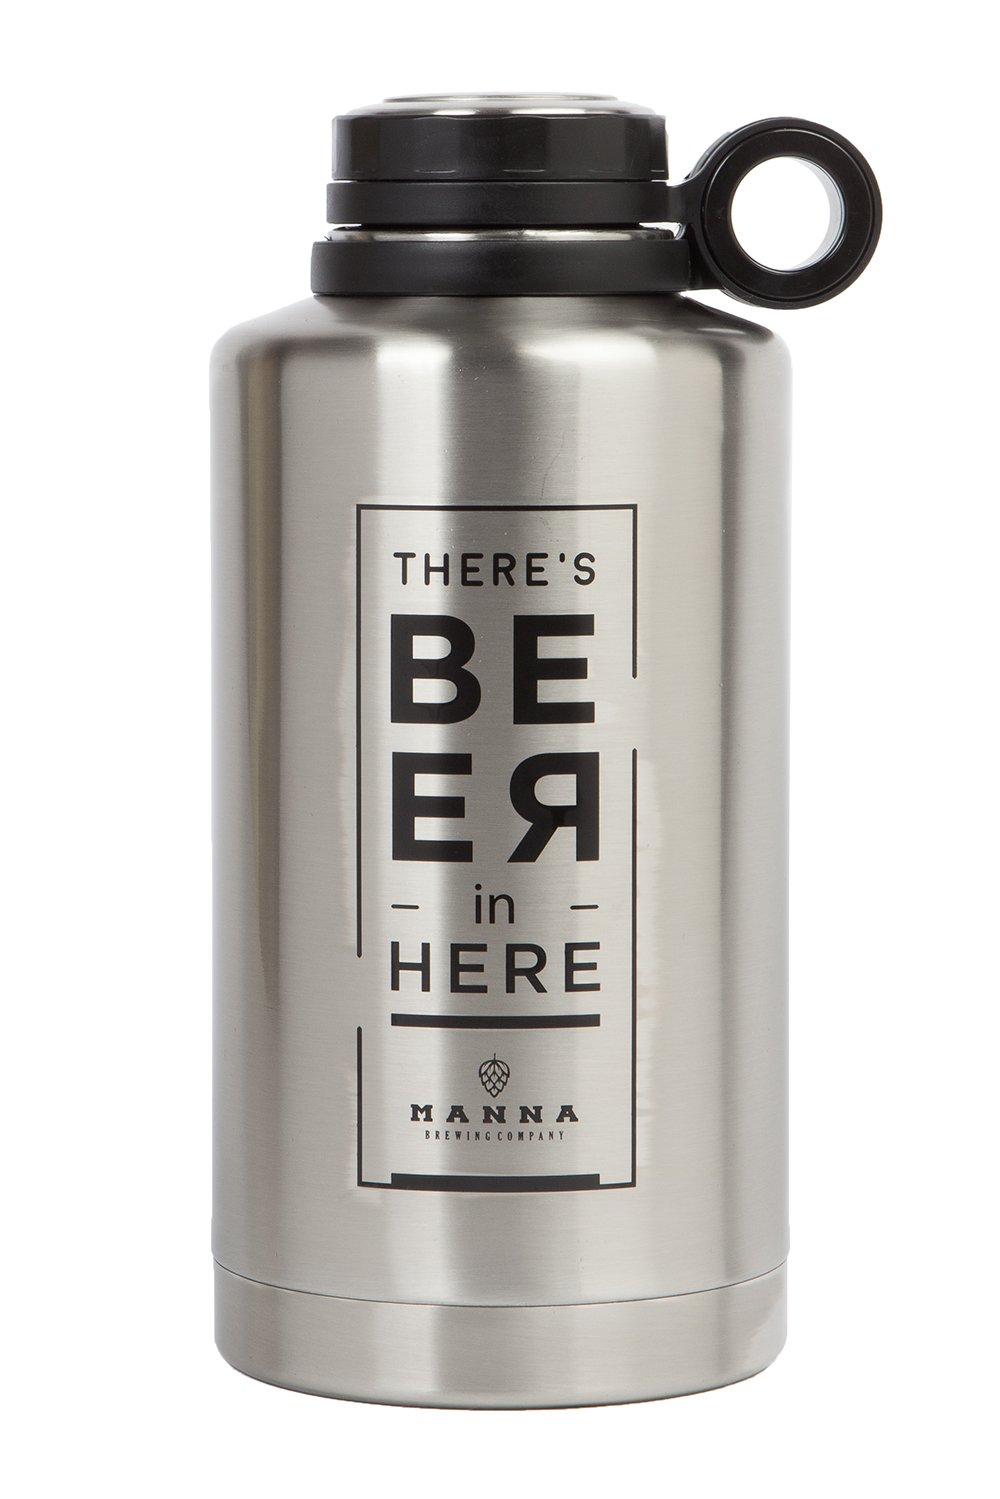 Manna Ring Growler   64oz Vacuum Insulated Stainless Steel   Craft and IPA Beer Growler   Keeps Beverages Fresh and Cold up to 24 Hours   Lead and BPA Free -Beer in Here